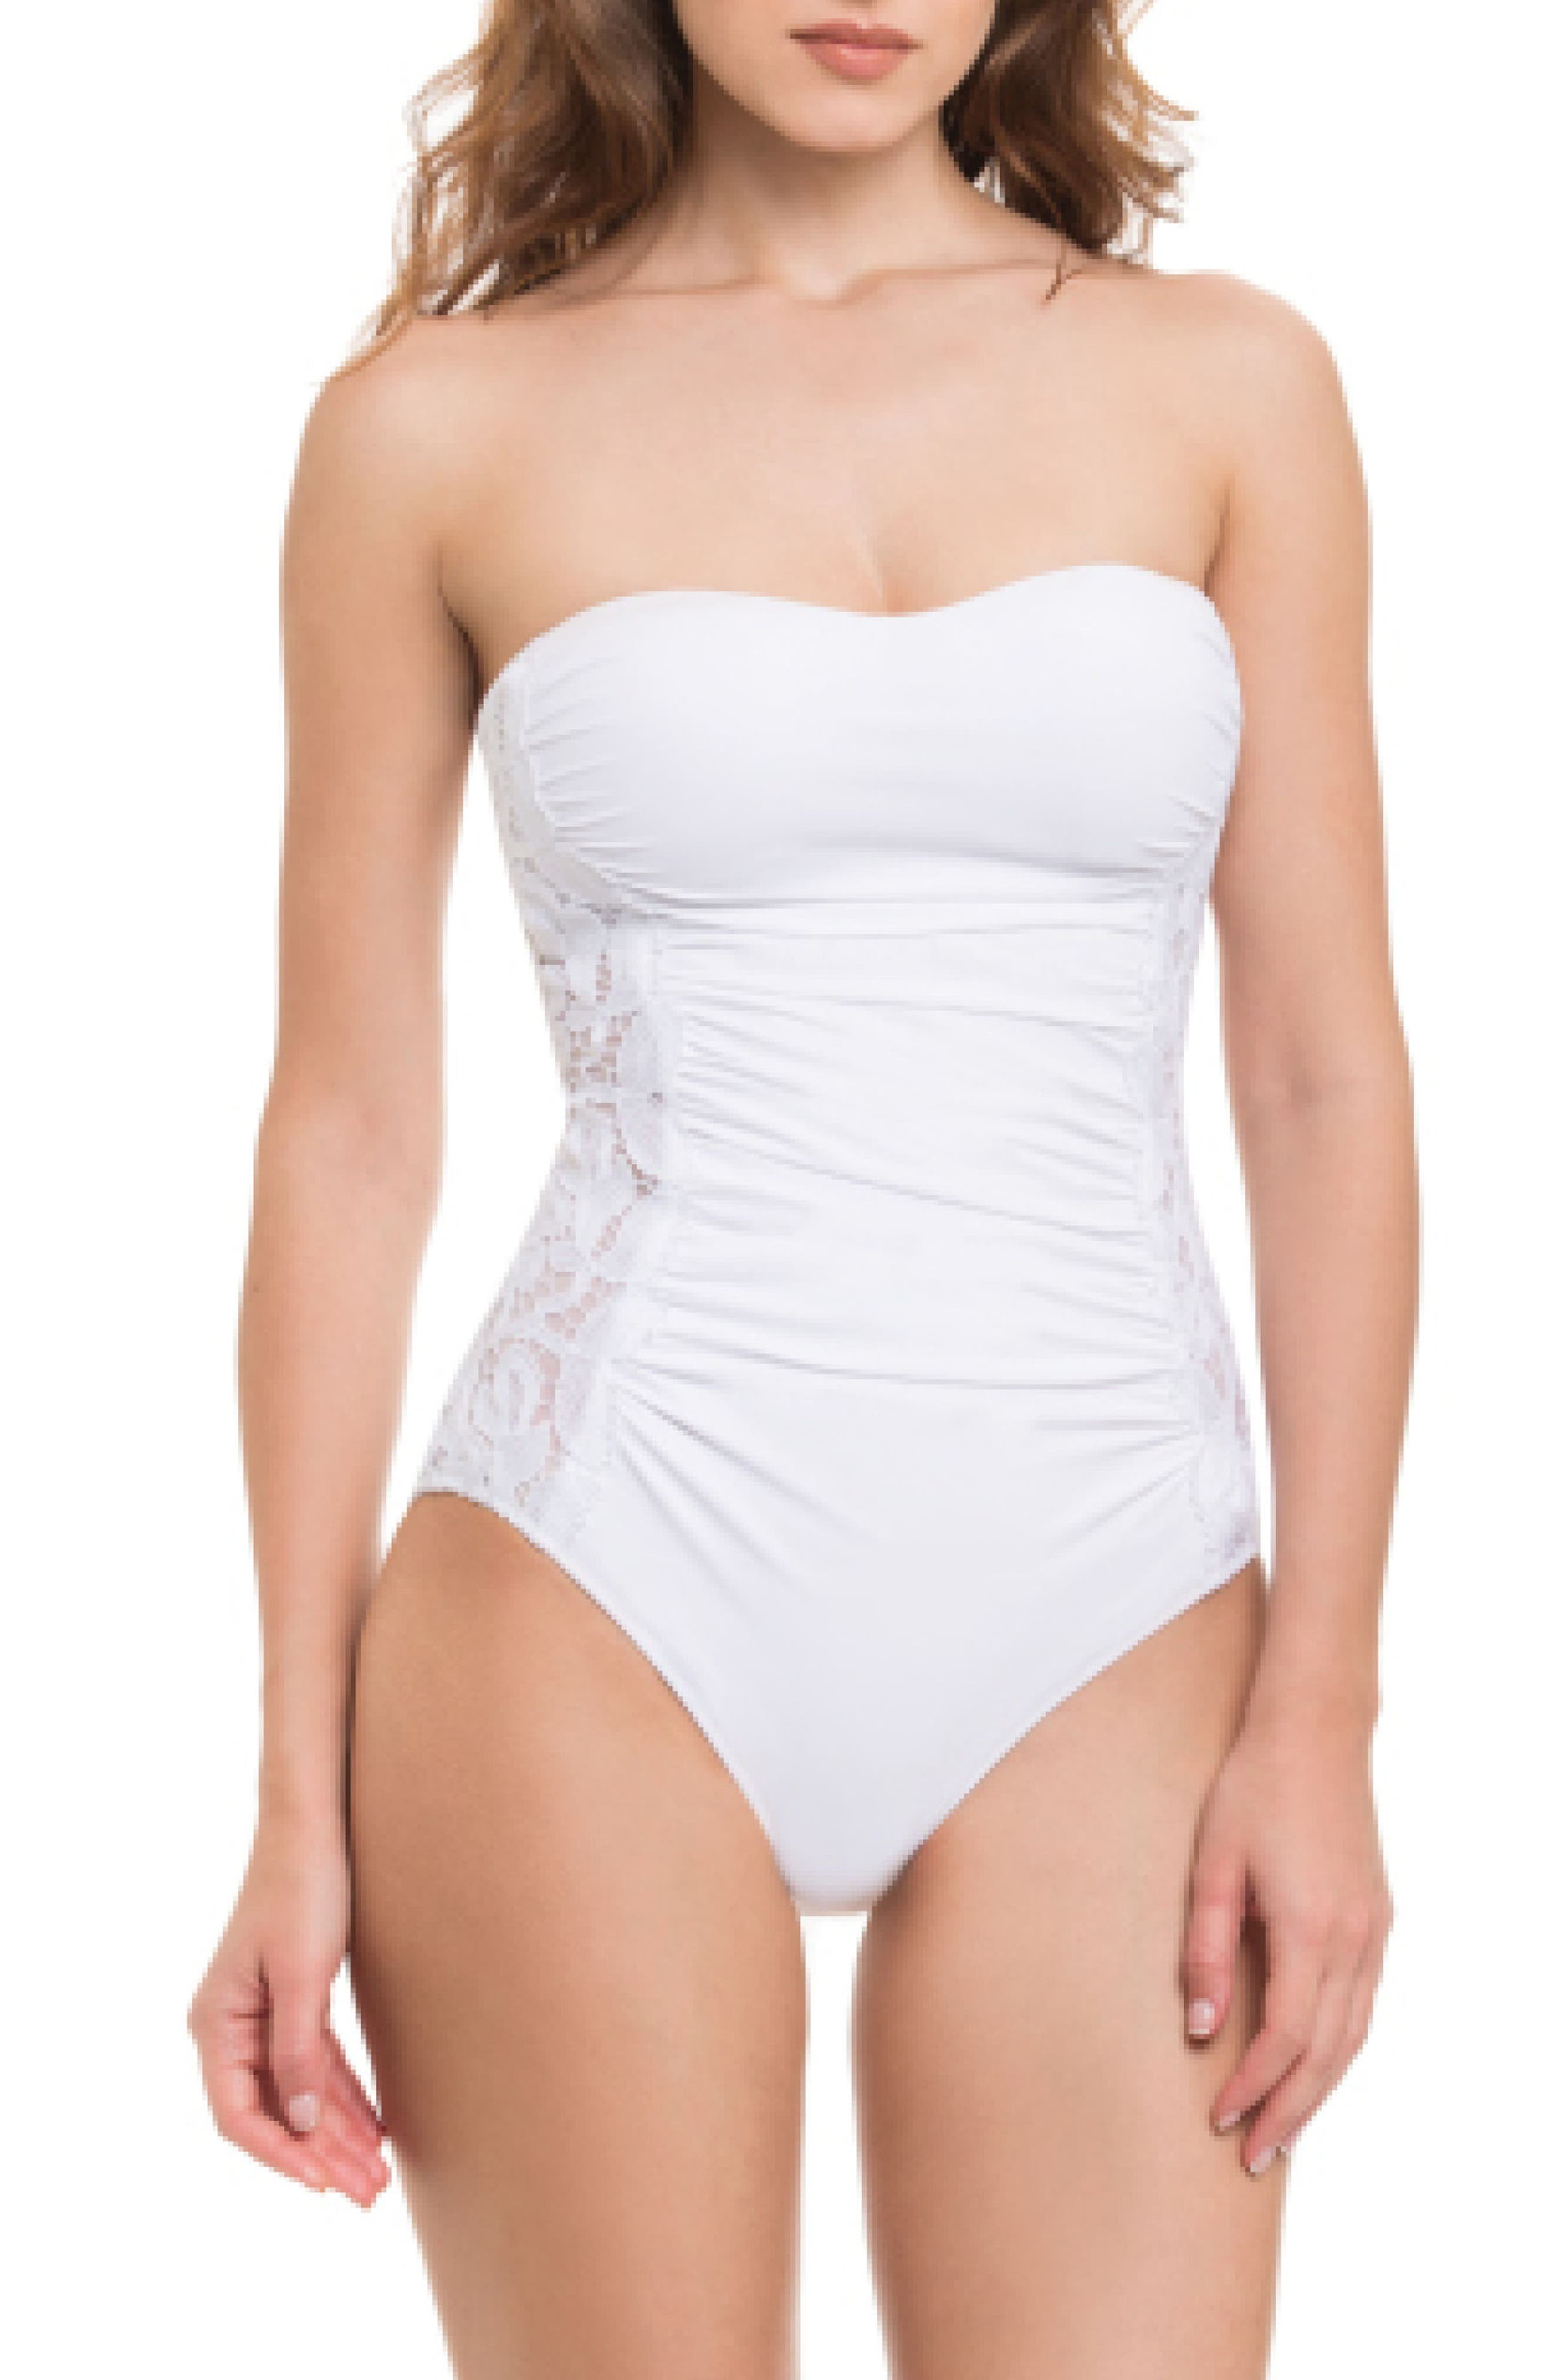 Alternate Image 1 Selected - Profile by Gottex Allure Bandeau One-Piece Swimsuit